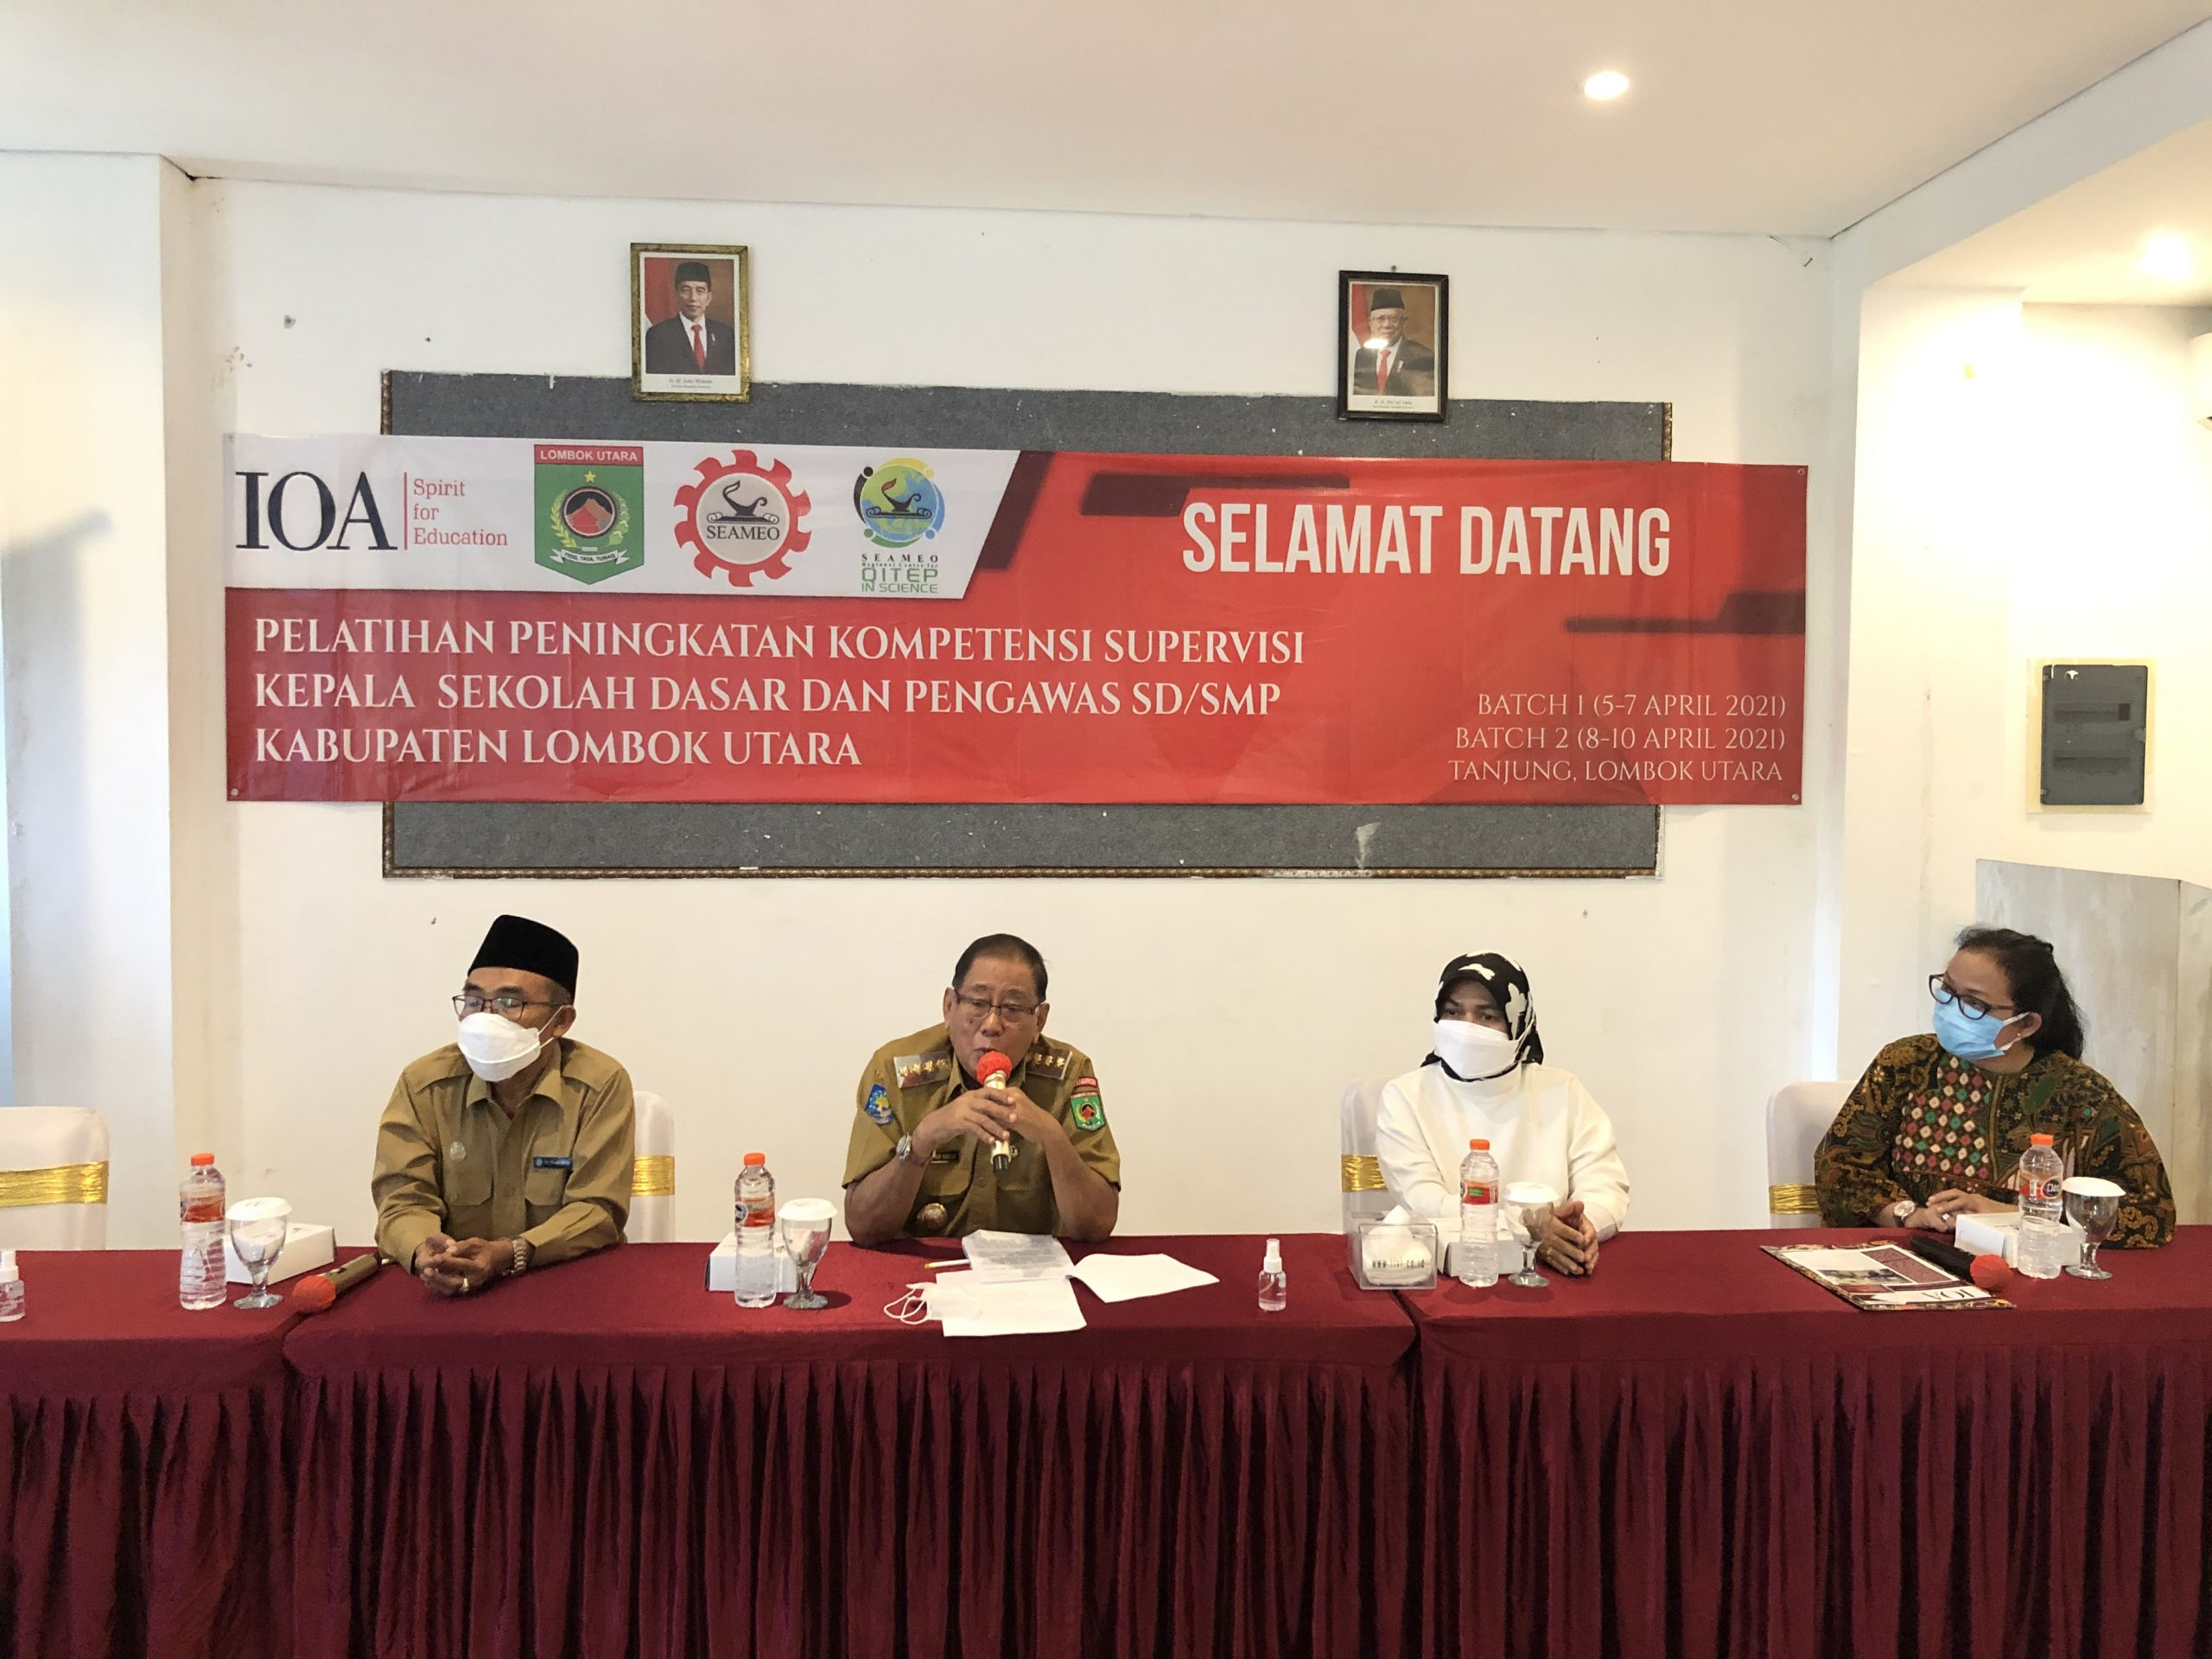 SEAQIS in Collaboration with Indonesian Overseas Alumni (IOA) Conducted Training on Classroom Supervision for Kindergarten, Primary, and Lower Secondary School Principals and Supervisors in North Lombok Regency